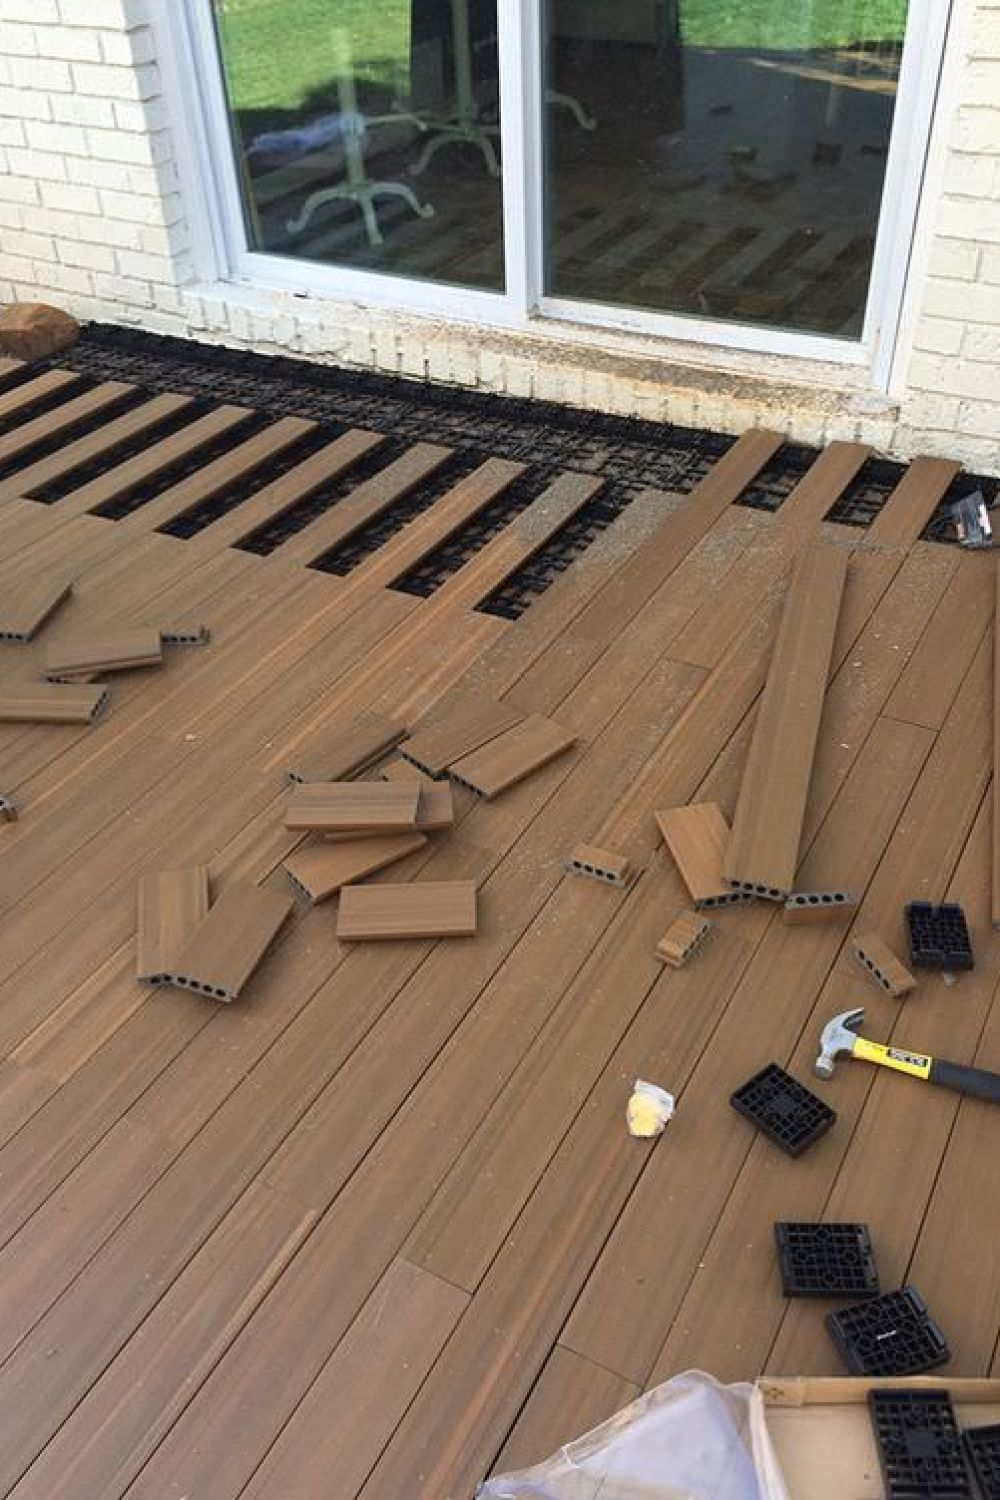 Is Parquet Flooring Coming Back? in 2020 Patio tiles